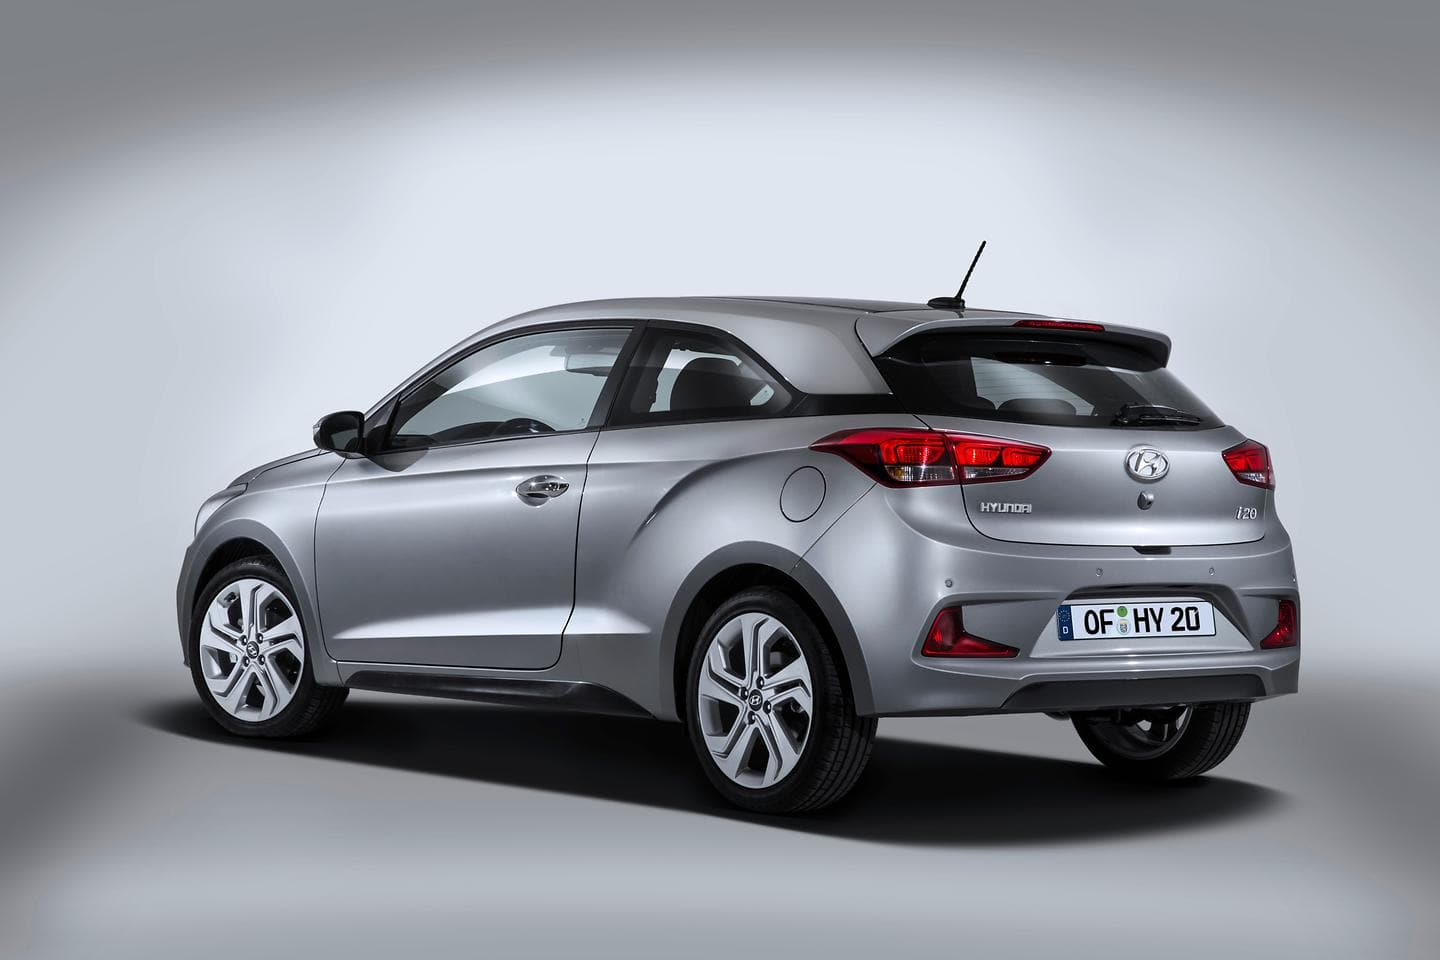 New Generation i20 Coupe (2)